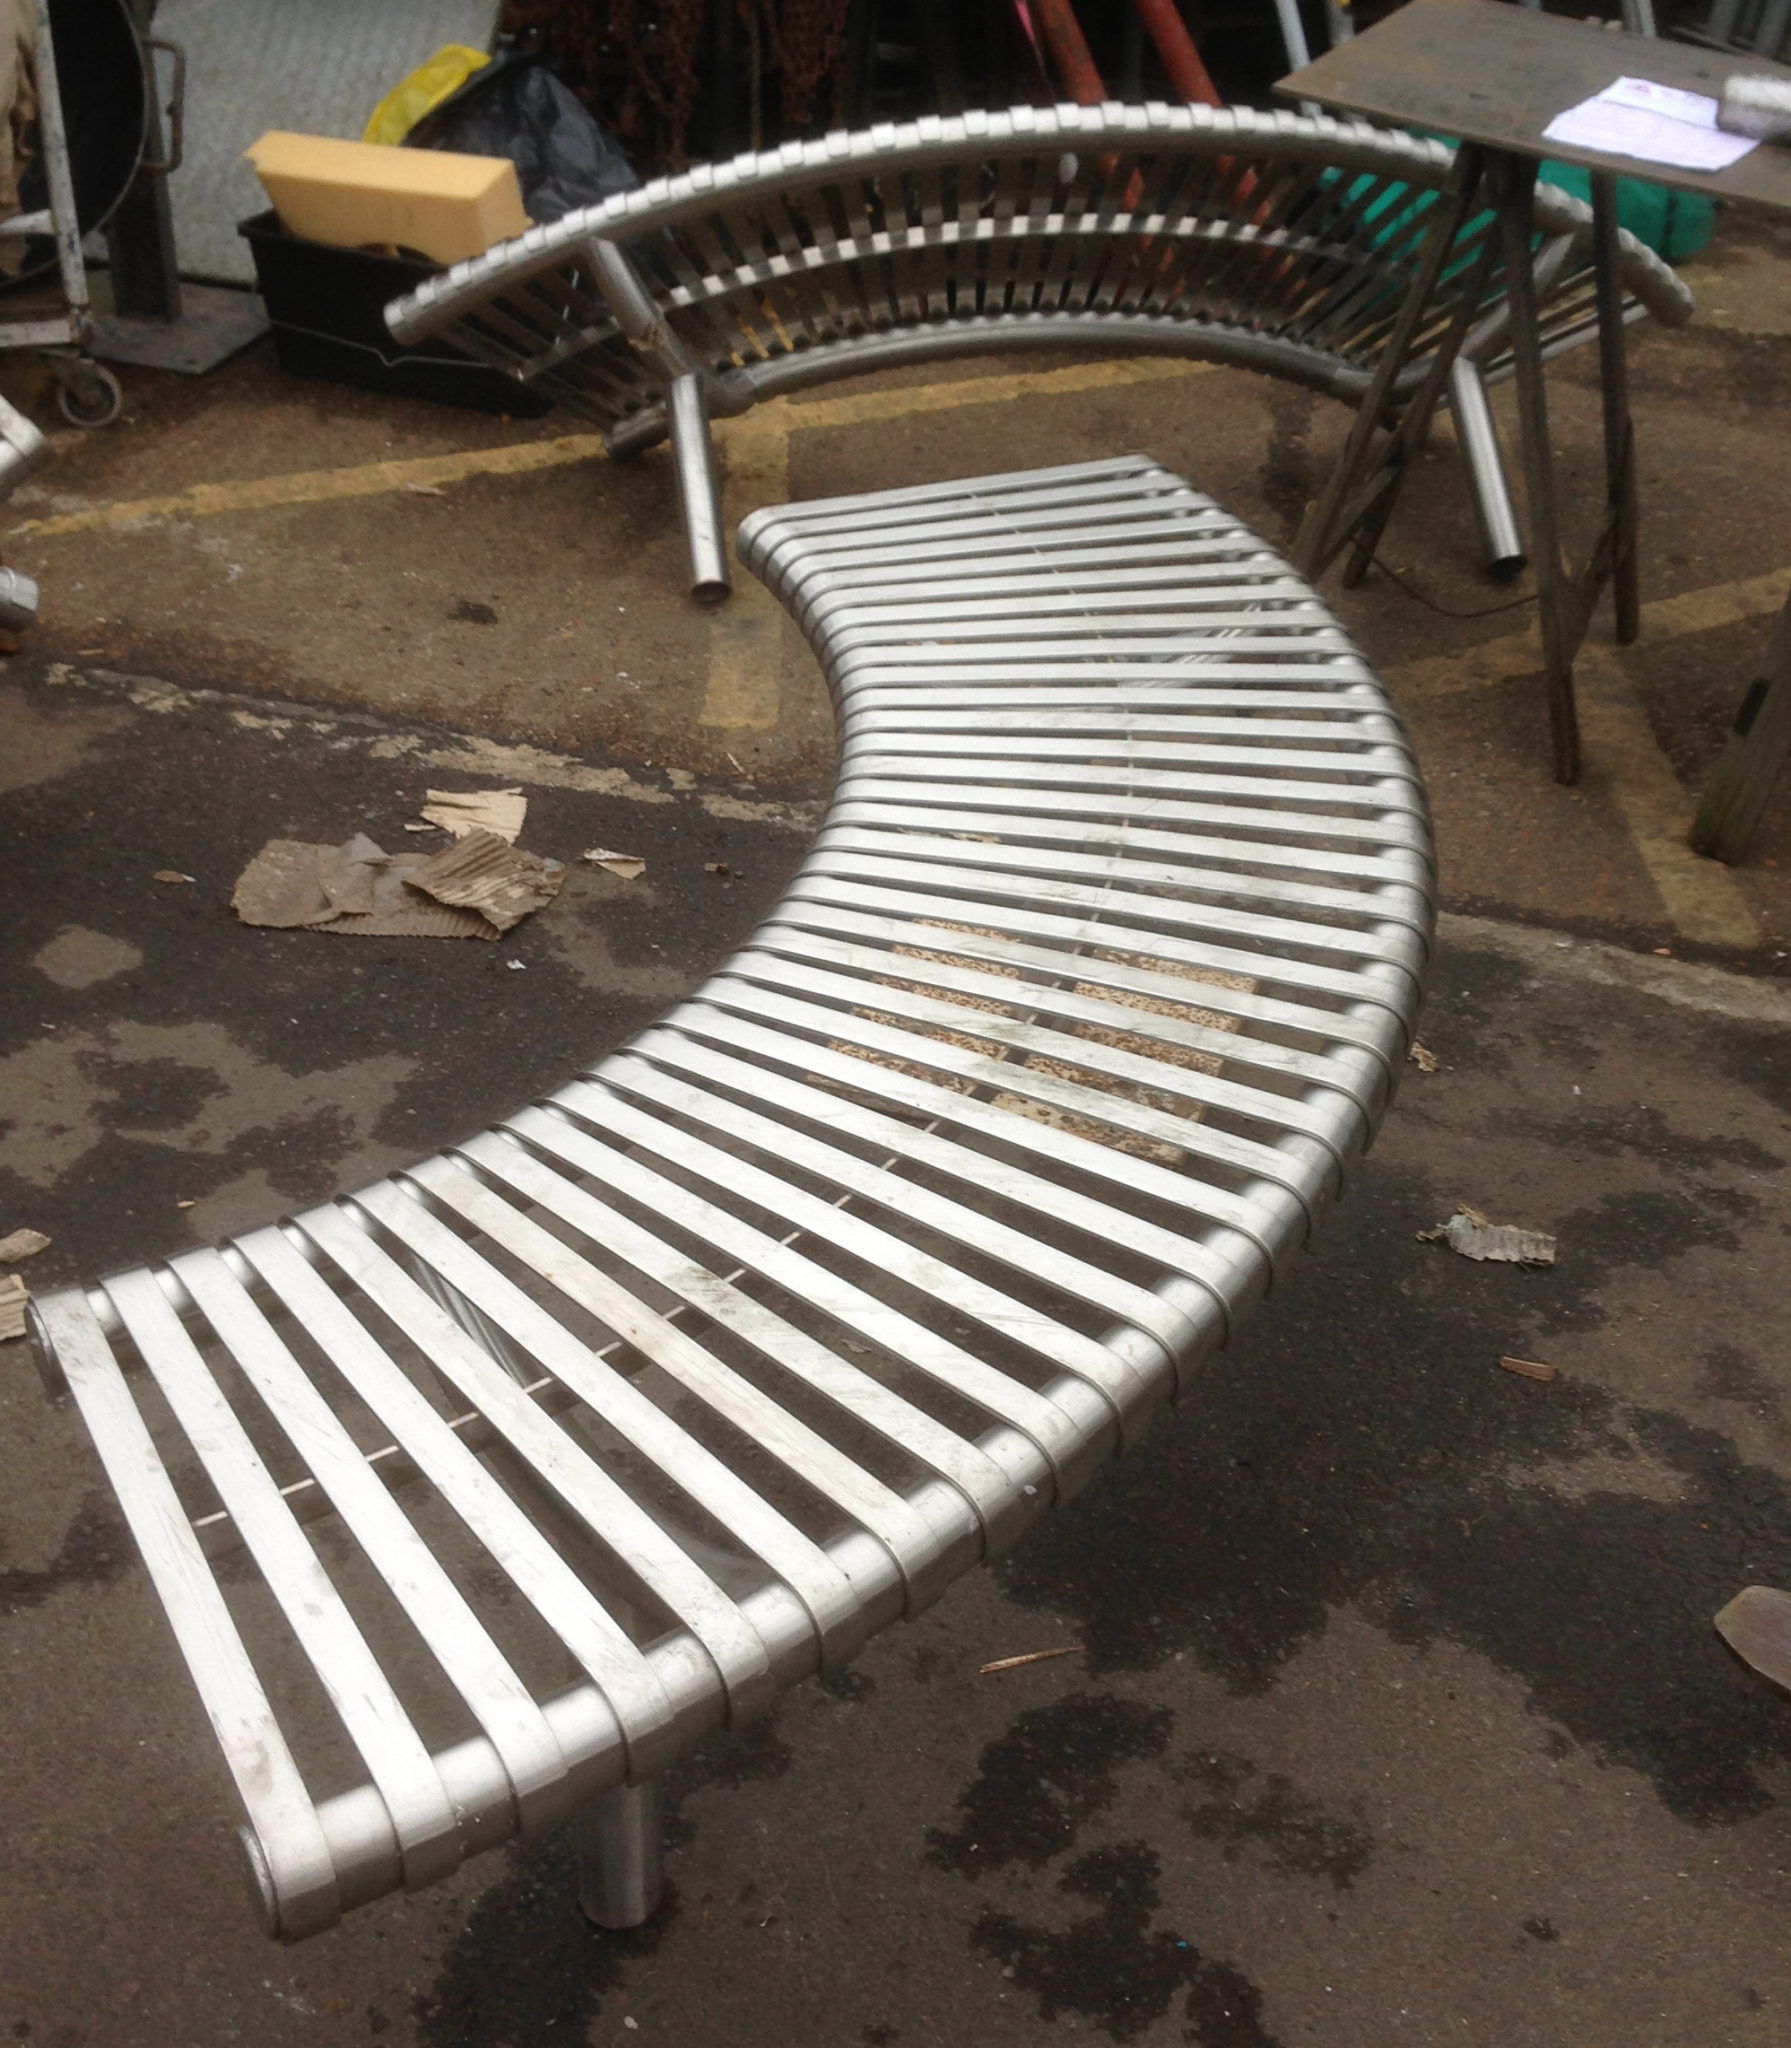 Bench Stainless 4 Available - Bench Stainless